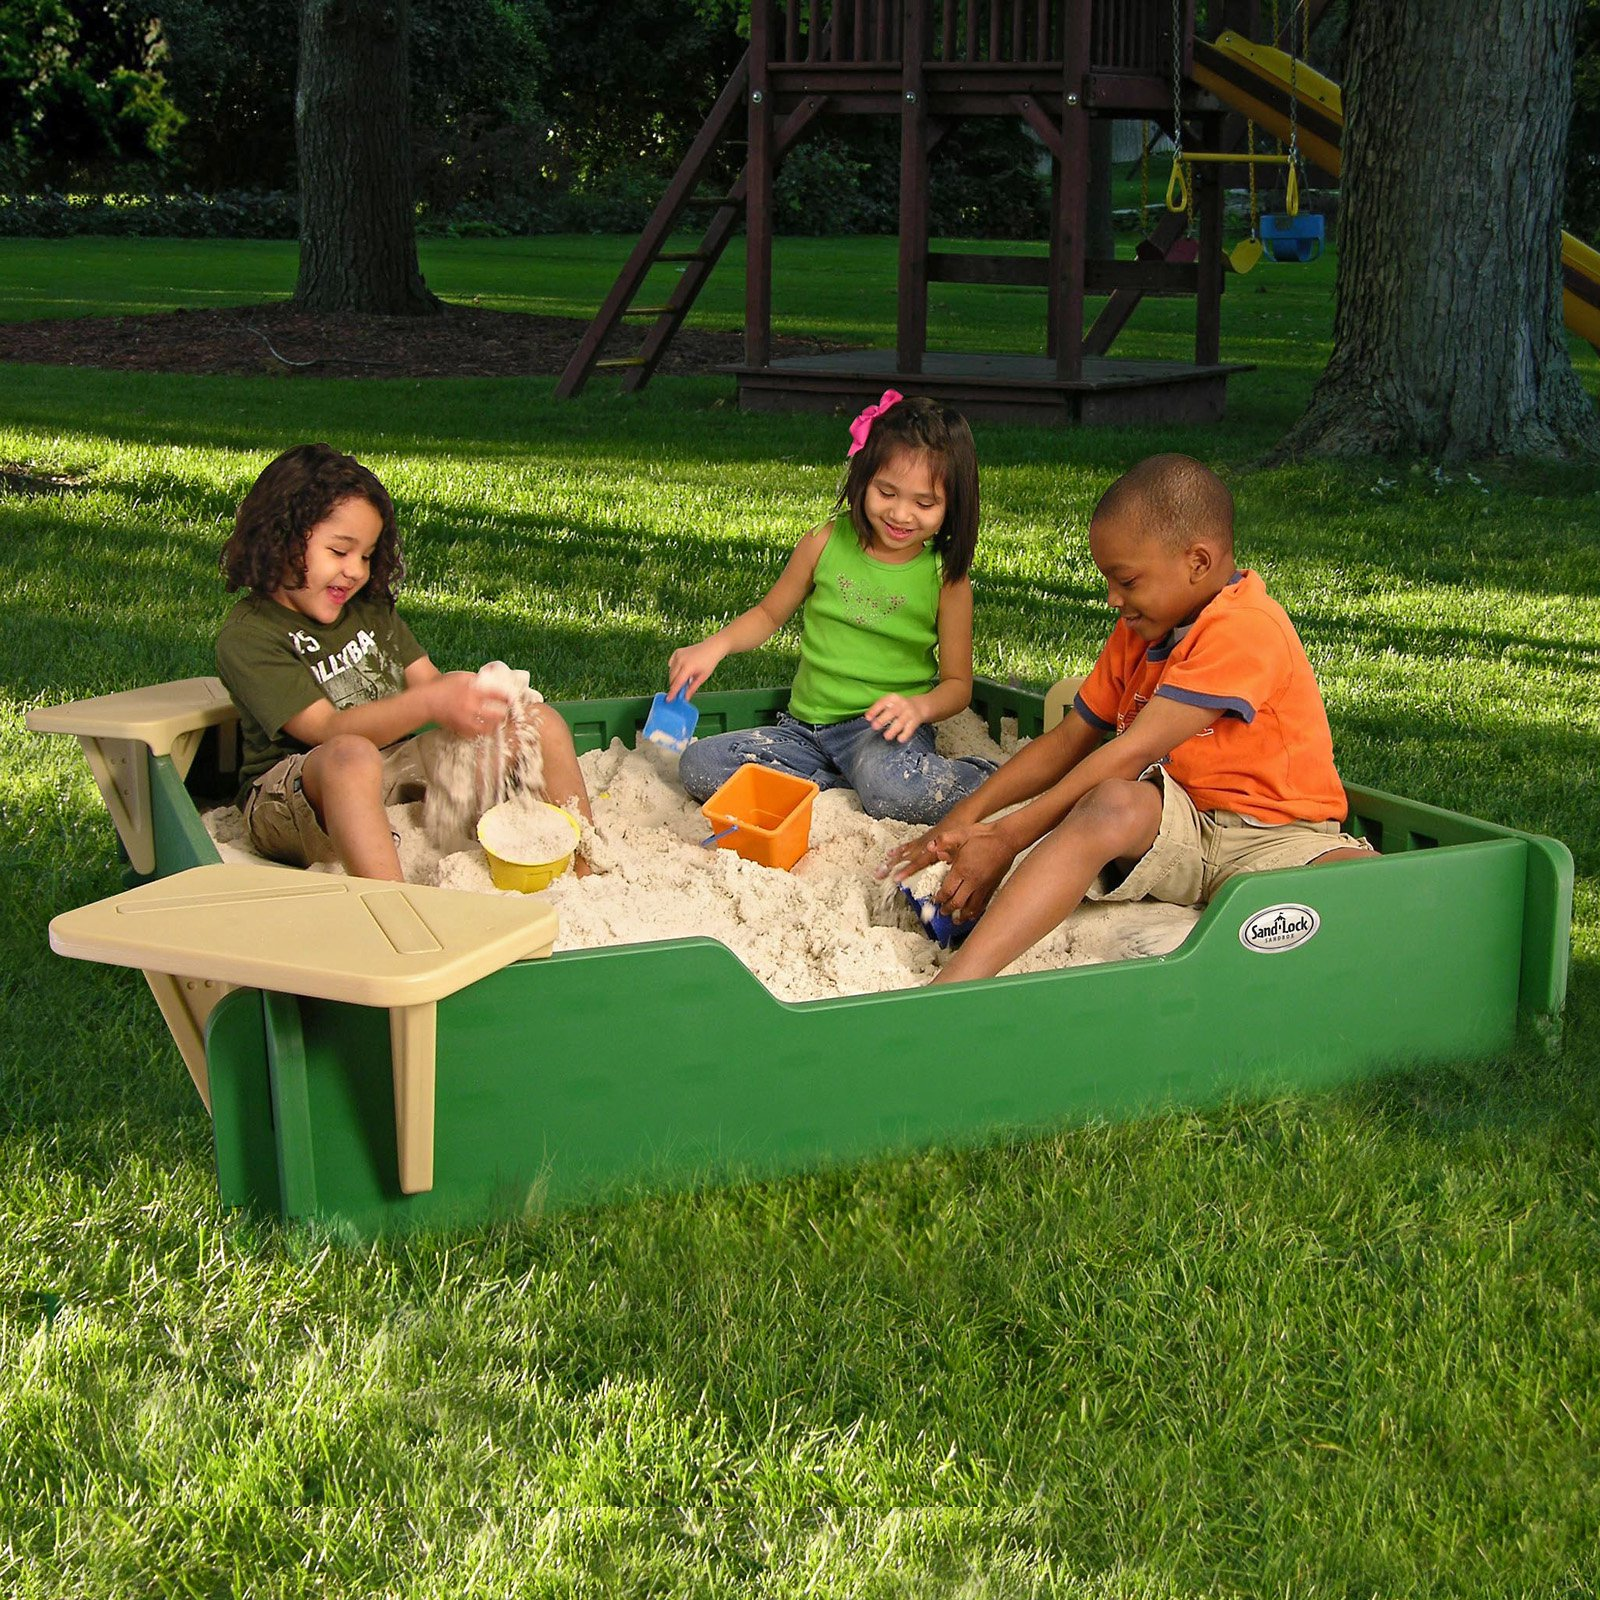 Sandlock 5 x 5-ft. Sandbox with Cover by Sandlock Sandbox LLC